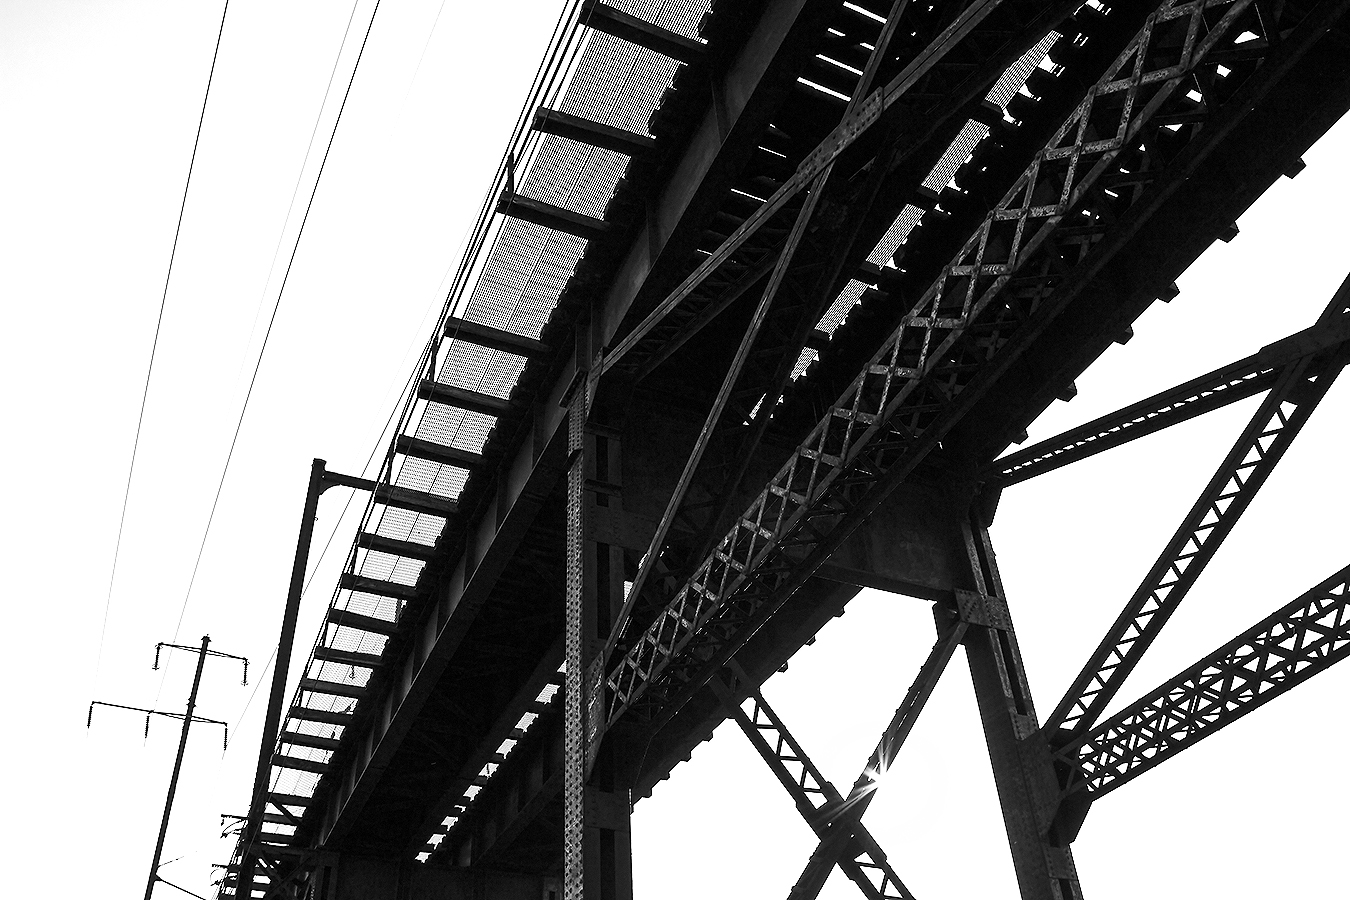 Janelle_Tong_Photography_Tony_Ward_Studio_Individual_Project_UPenn_Penn_Park_Bridges_Railroad_Tracks_Underneath_Rust_Structure_Black_and_White_3